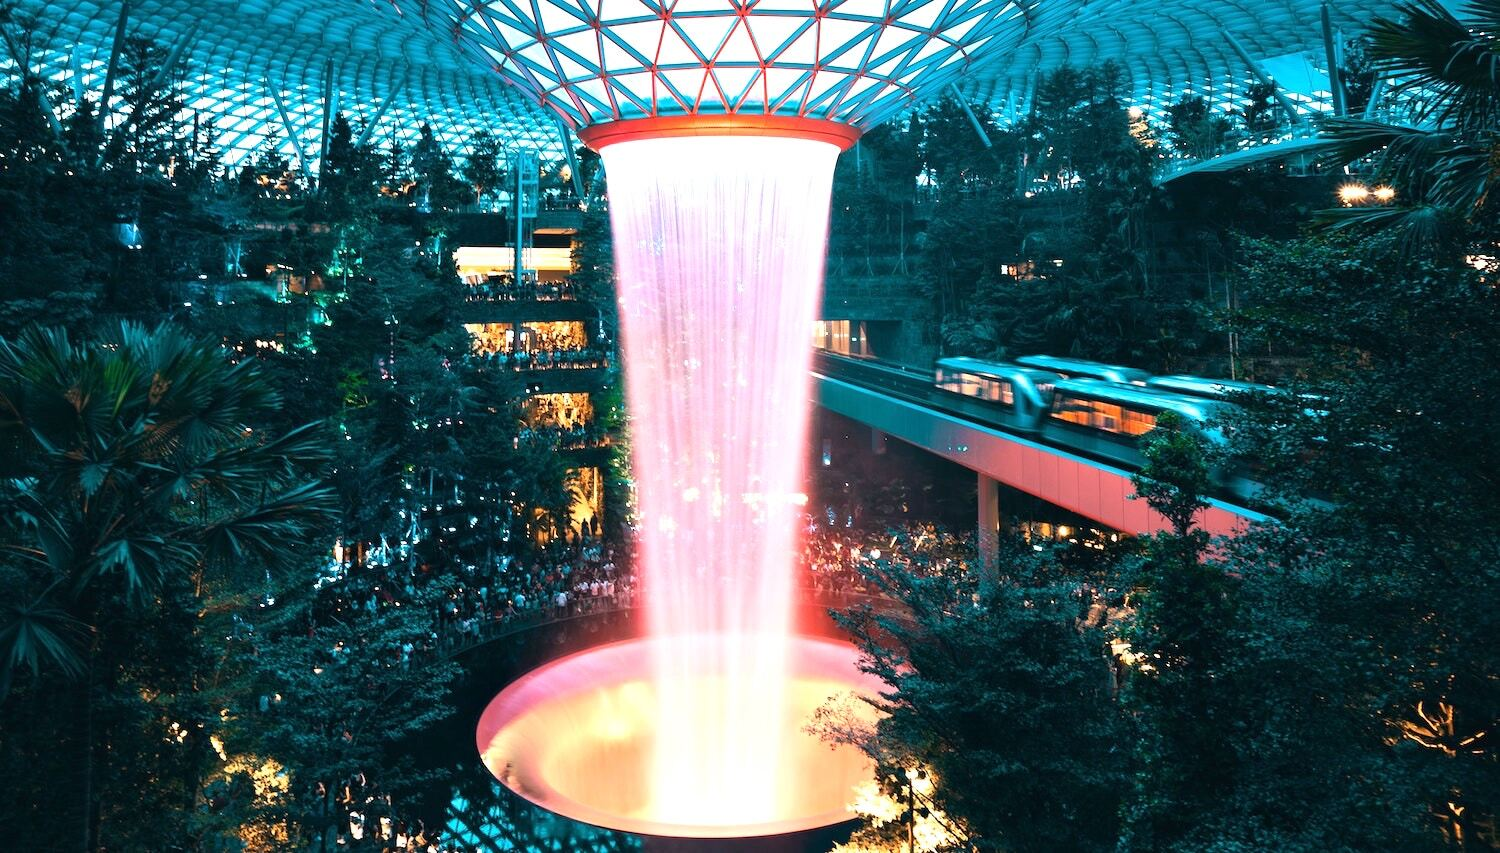 The best things to do on a rainy day in Singapore